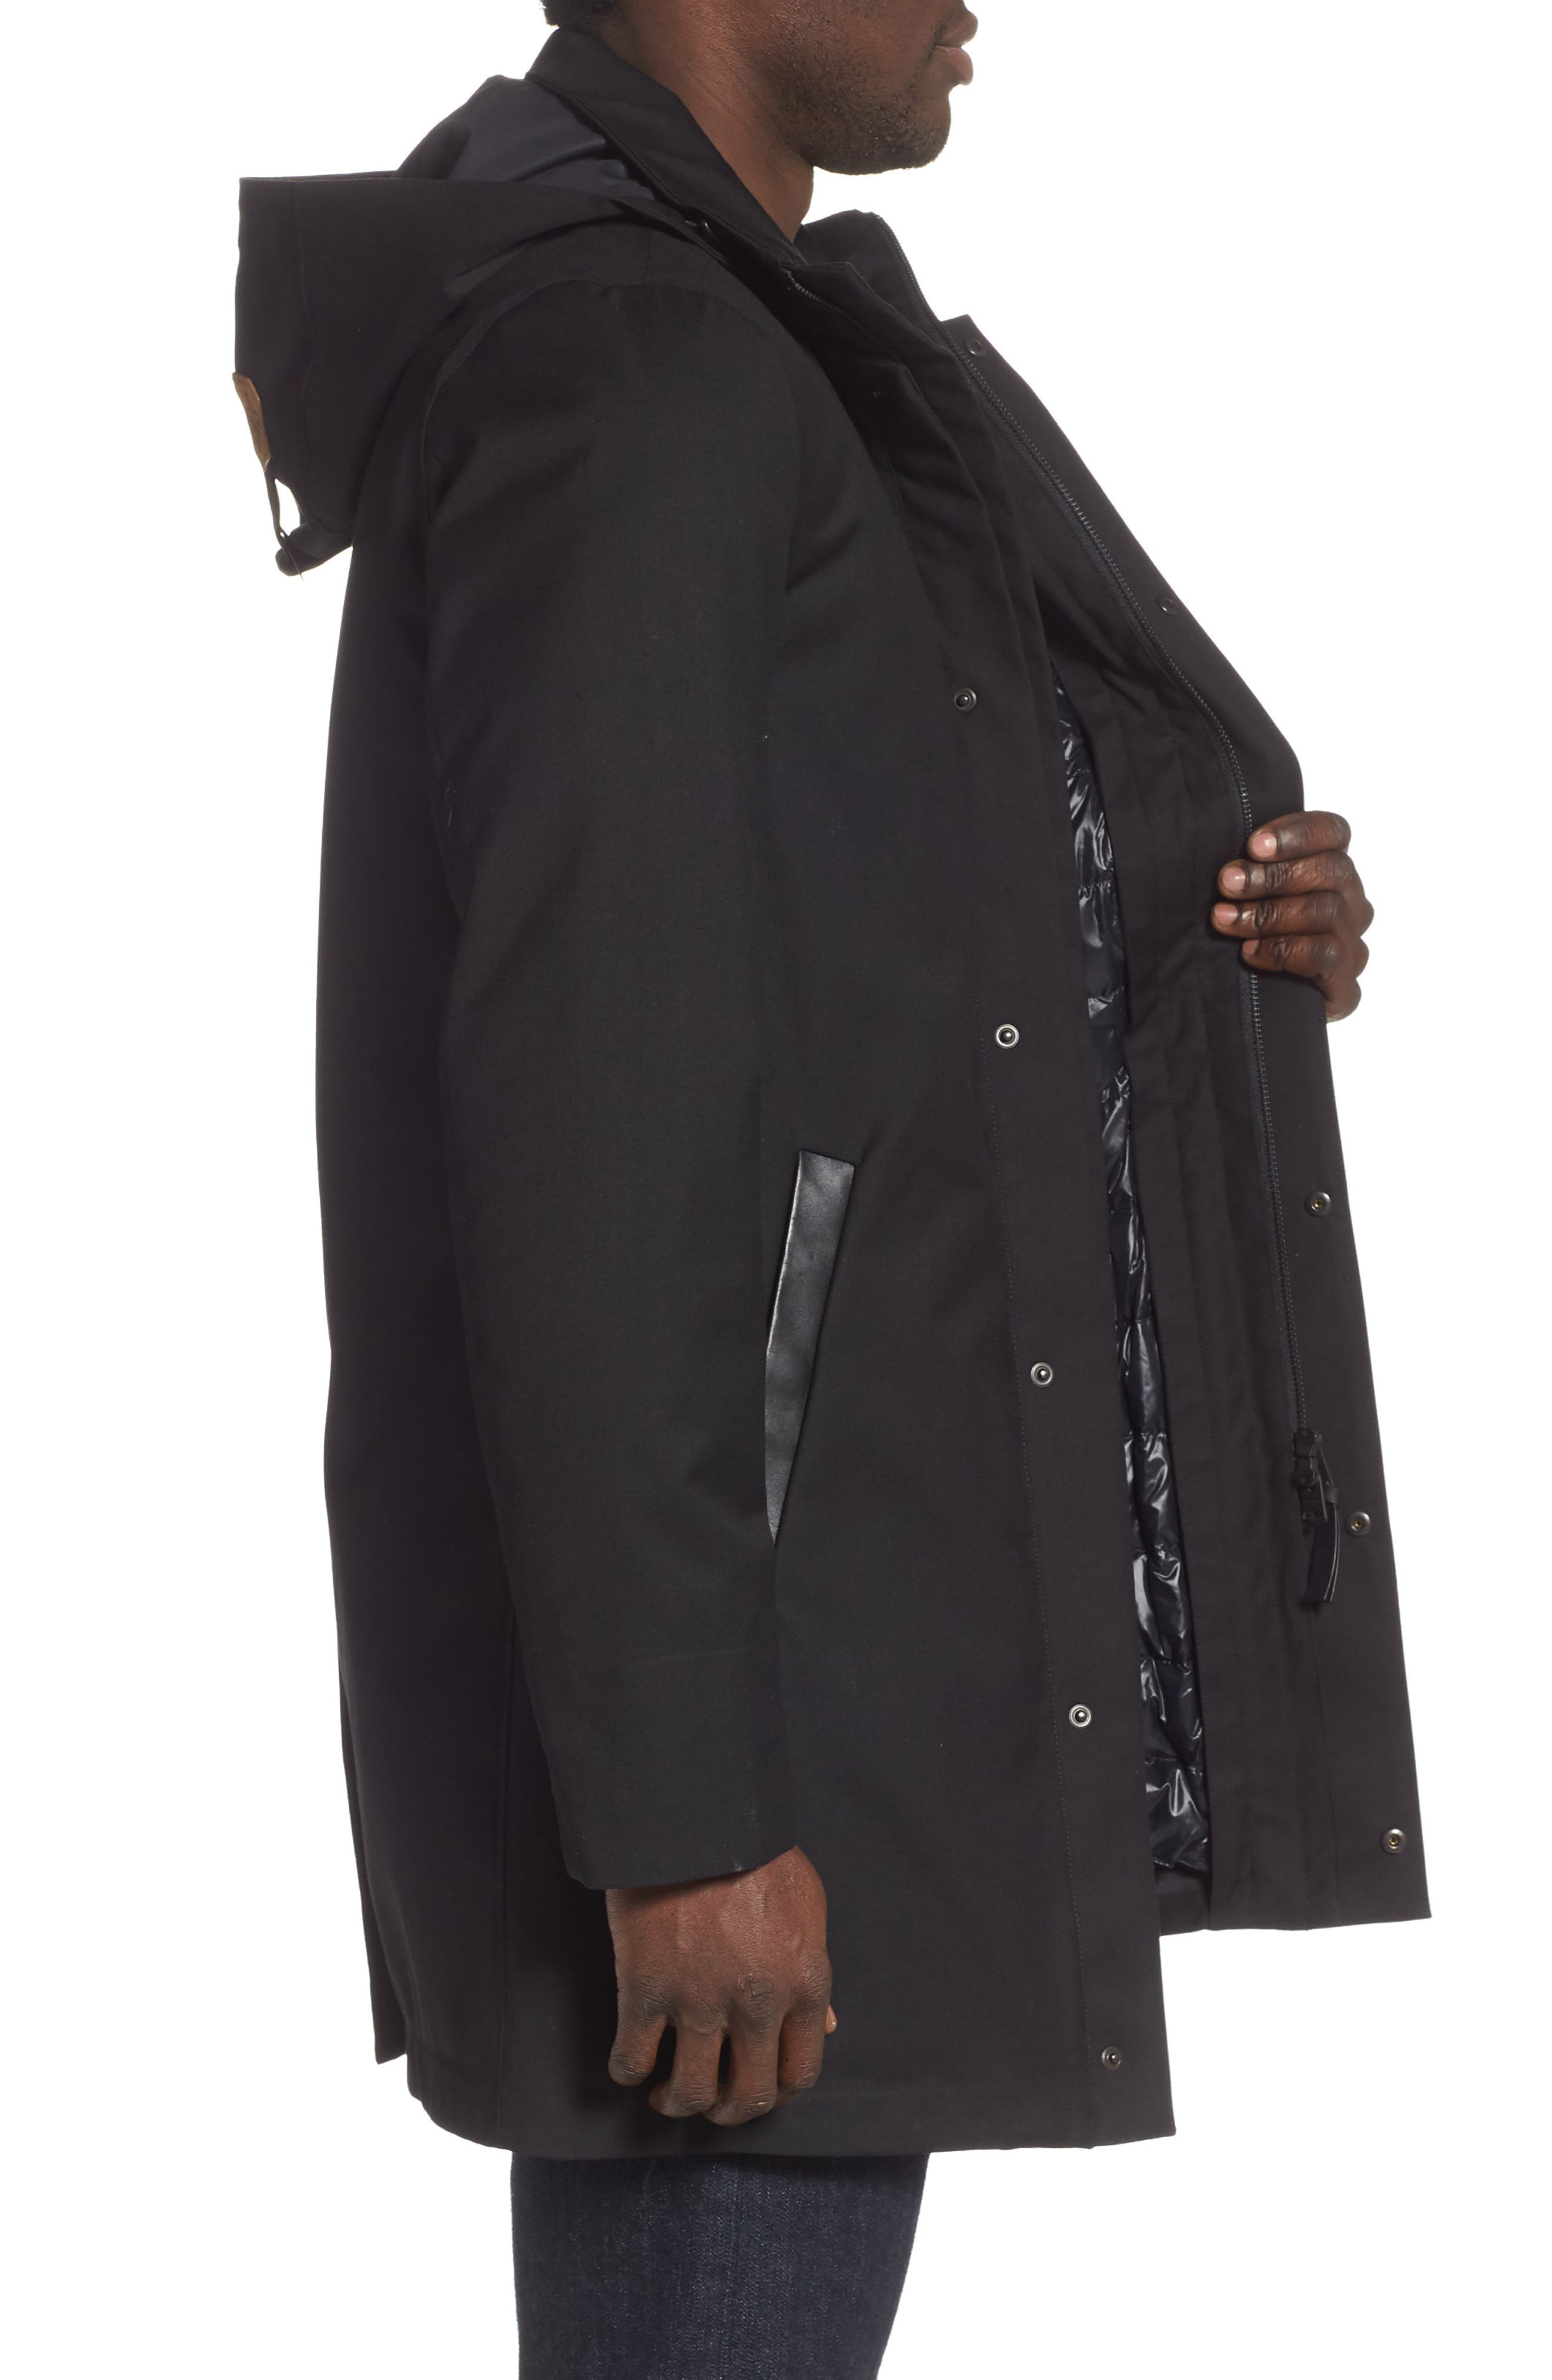 MACKAGE, Thorin-Z Jacket with Removable Down Lining, Alternate thumbnail 3, color, BLACK